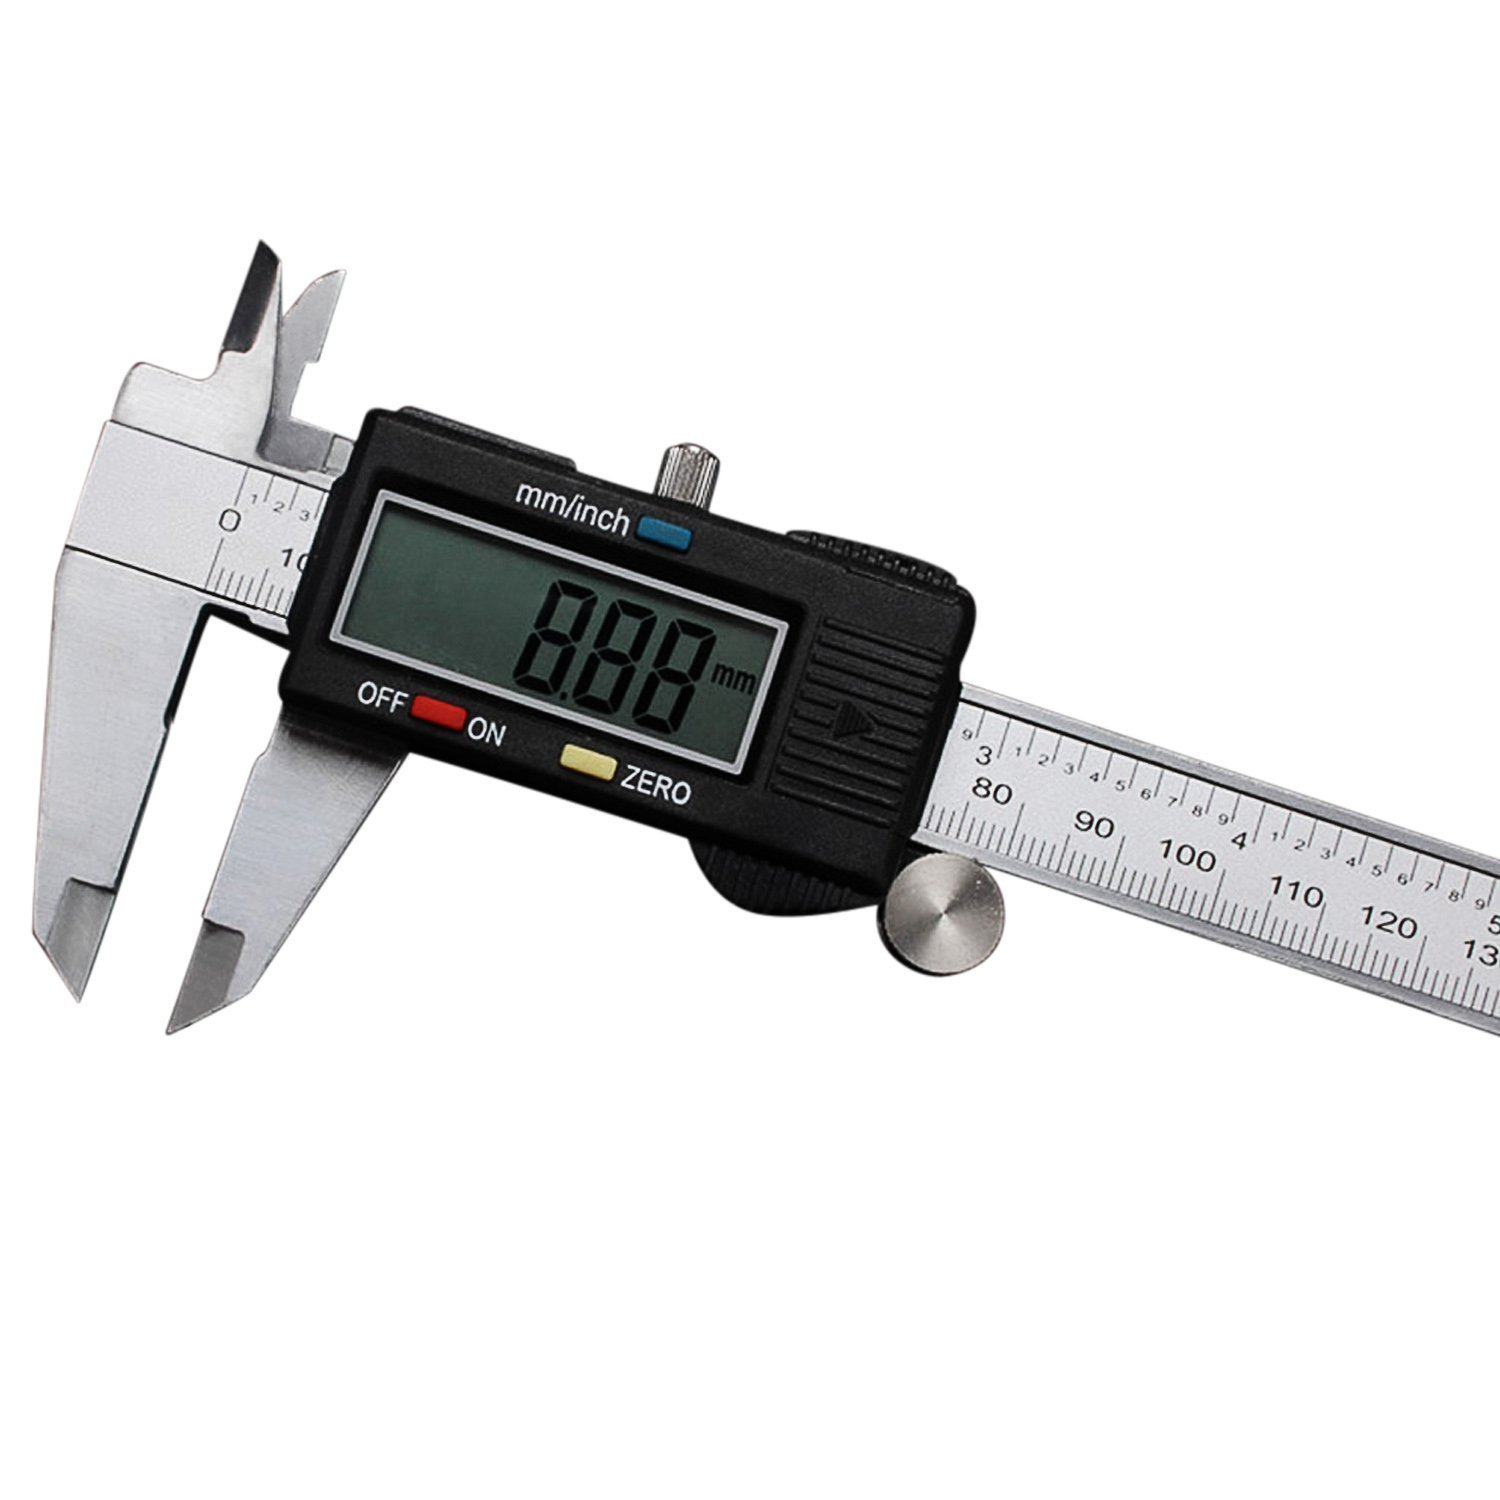 Digital Vernier Caliper Inch Metric Conversion 0-6 Inch/150 mm with LCD Stainless Steel Electronic Depth Gauge Measuring Tools by OKPOW